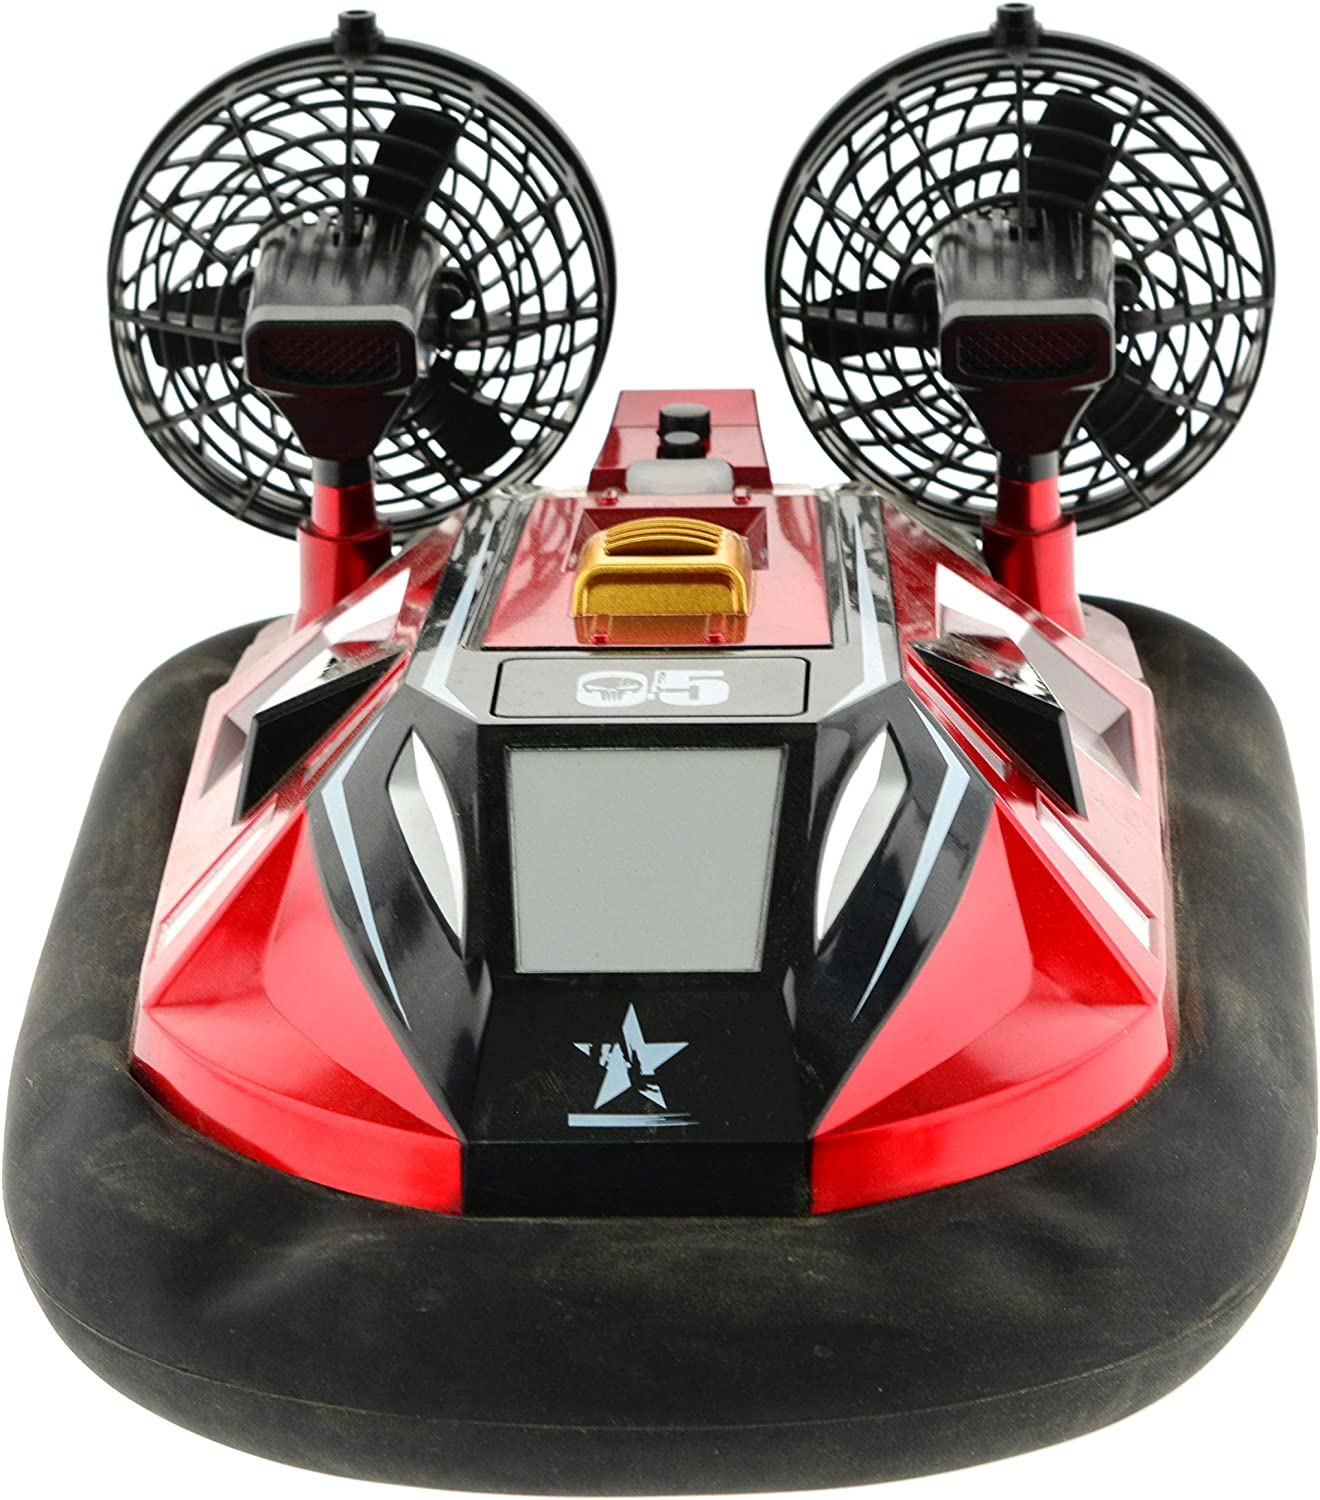 1:10 Scale Hovercraft with Inflatable Skirt. Can be Driven on Any Flat Surface and on Water 2.4 GHz Remote with Rechargeable Batteries